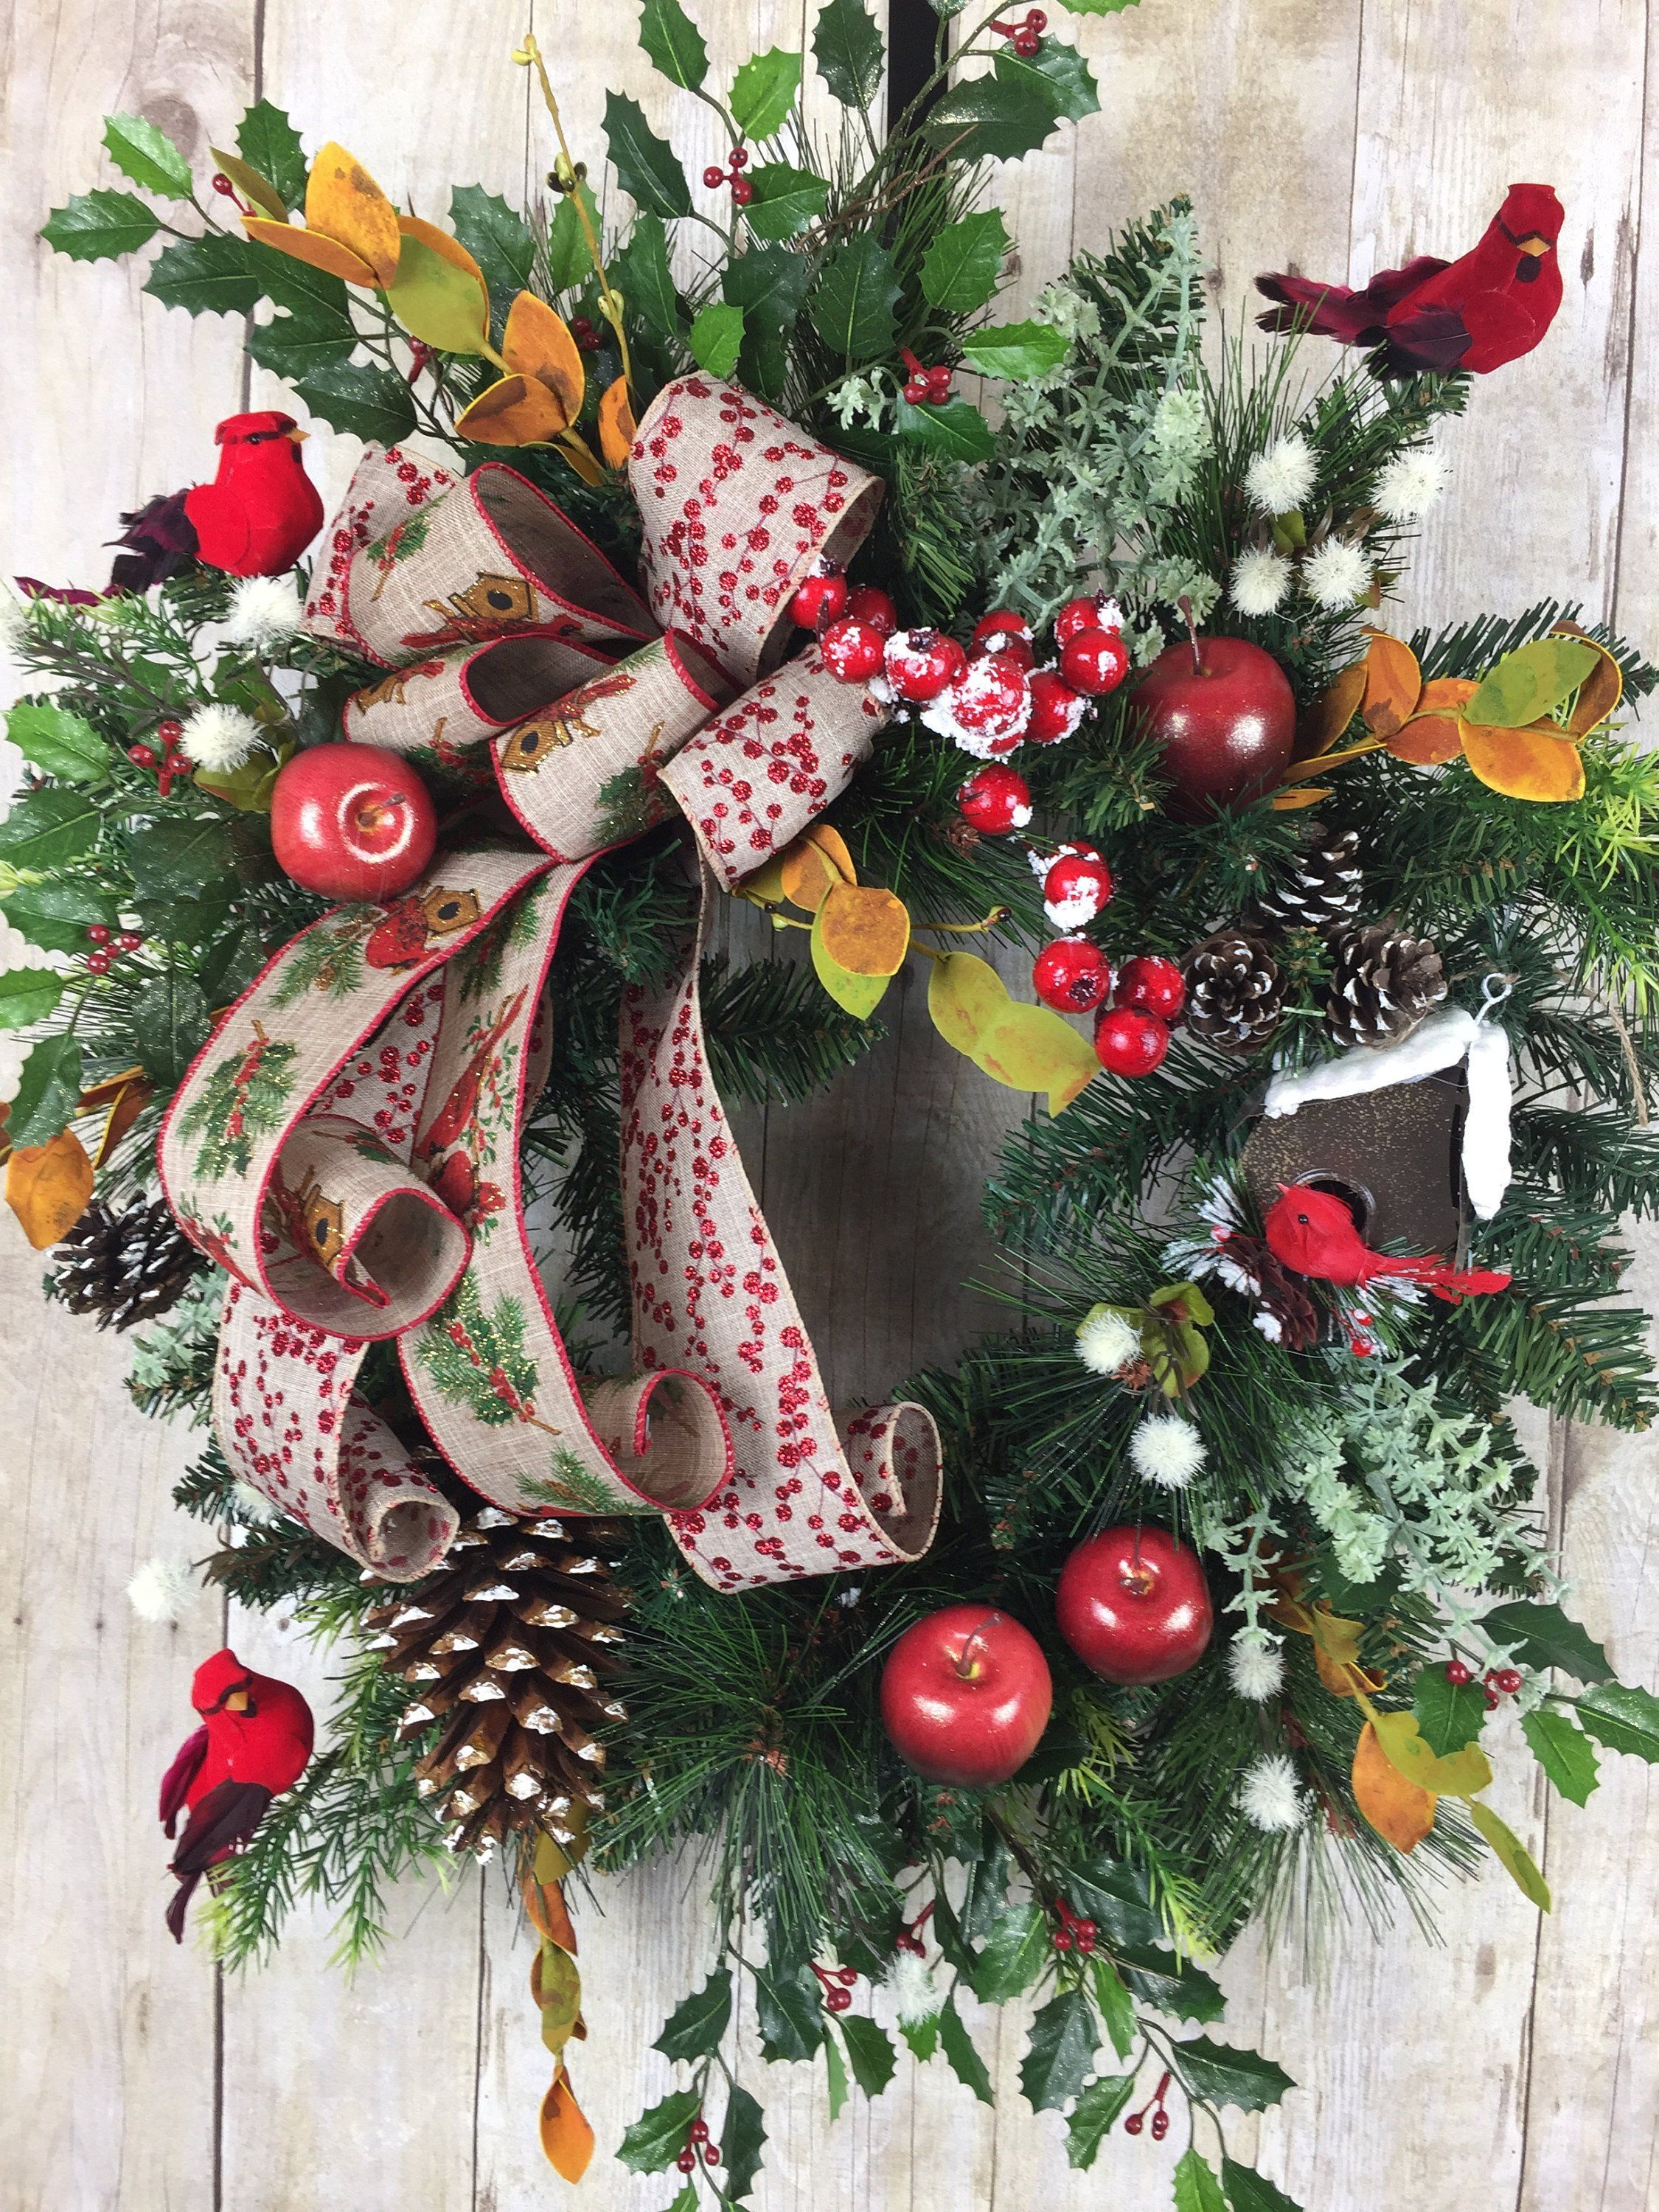 Christmas Wreath For Front Door Large Rustic Winter Holiday Outdoor Decorations Farm House Decor By Spratsdesign On